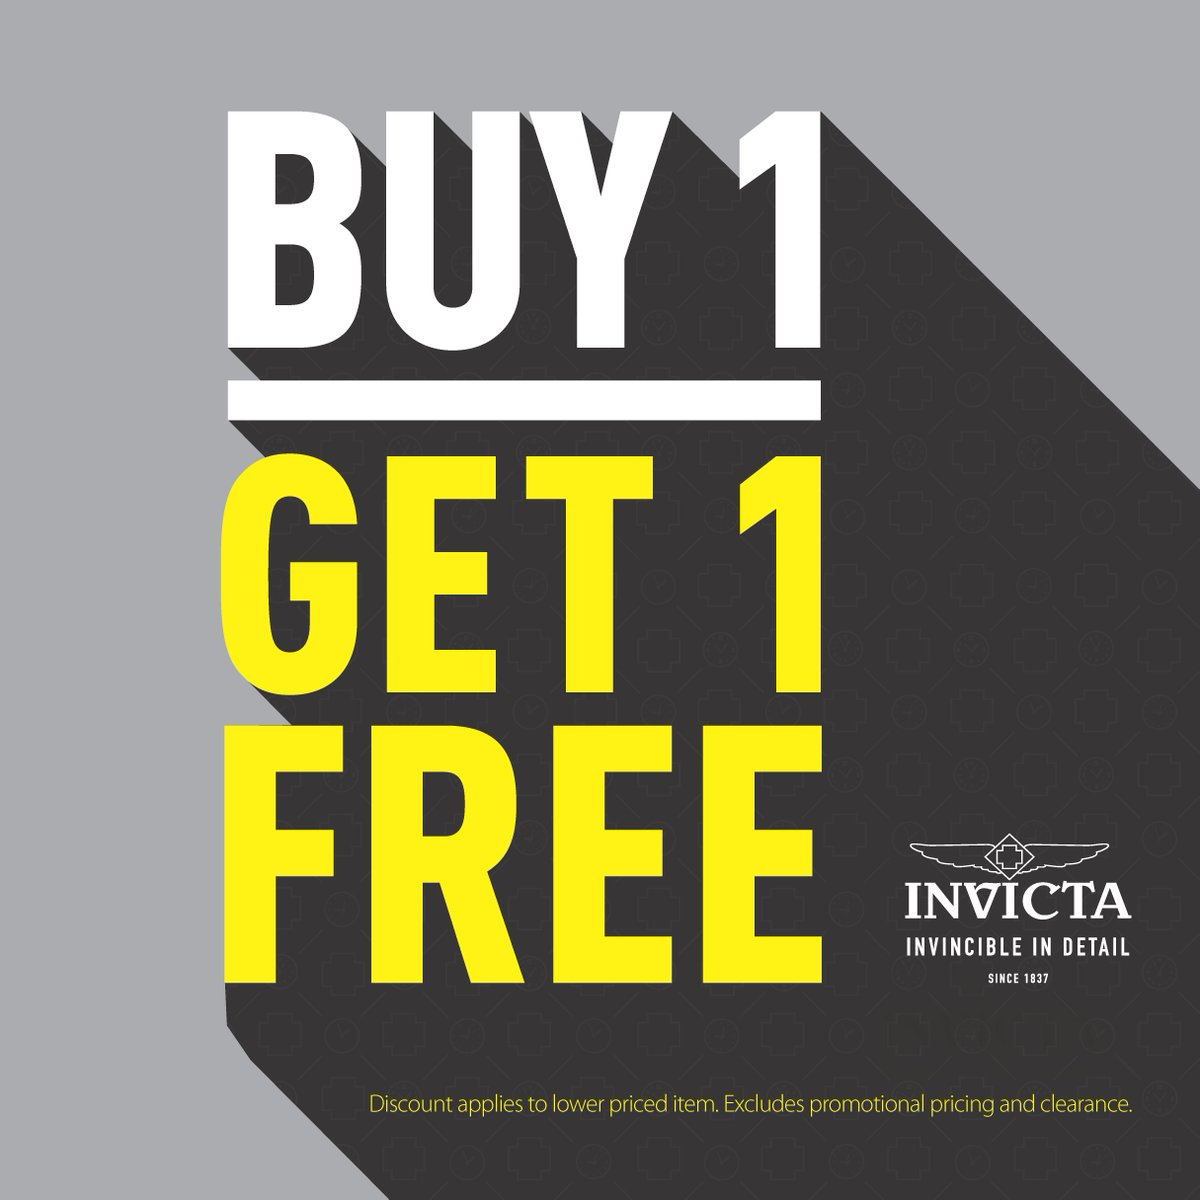 #BOGO begins! For a limited time only, buy 1 and get 1 #FREE exclusively at official Invicta Stores. #invicta #freewatch #sale